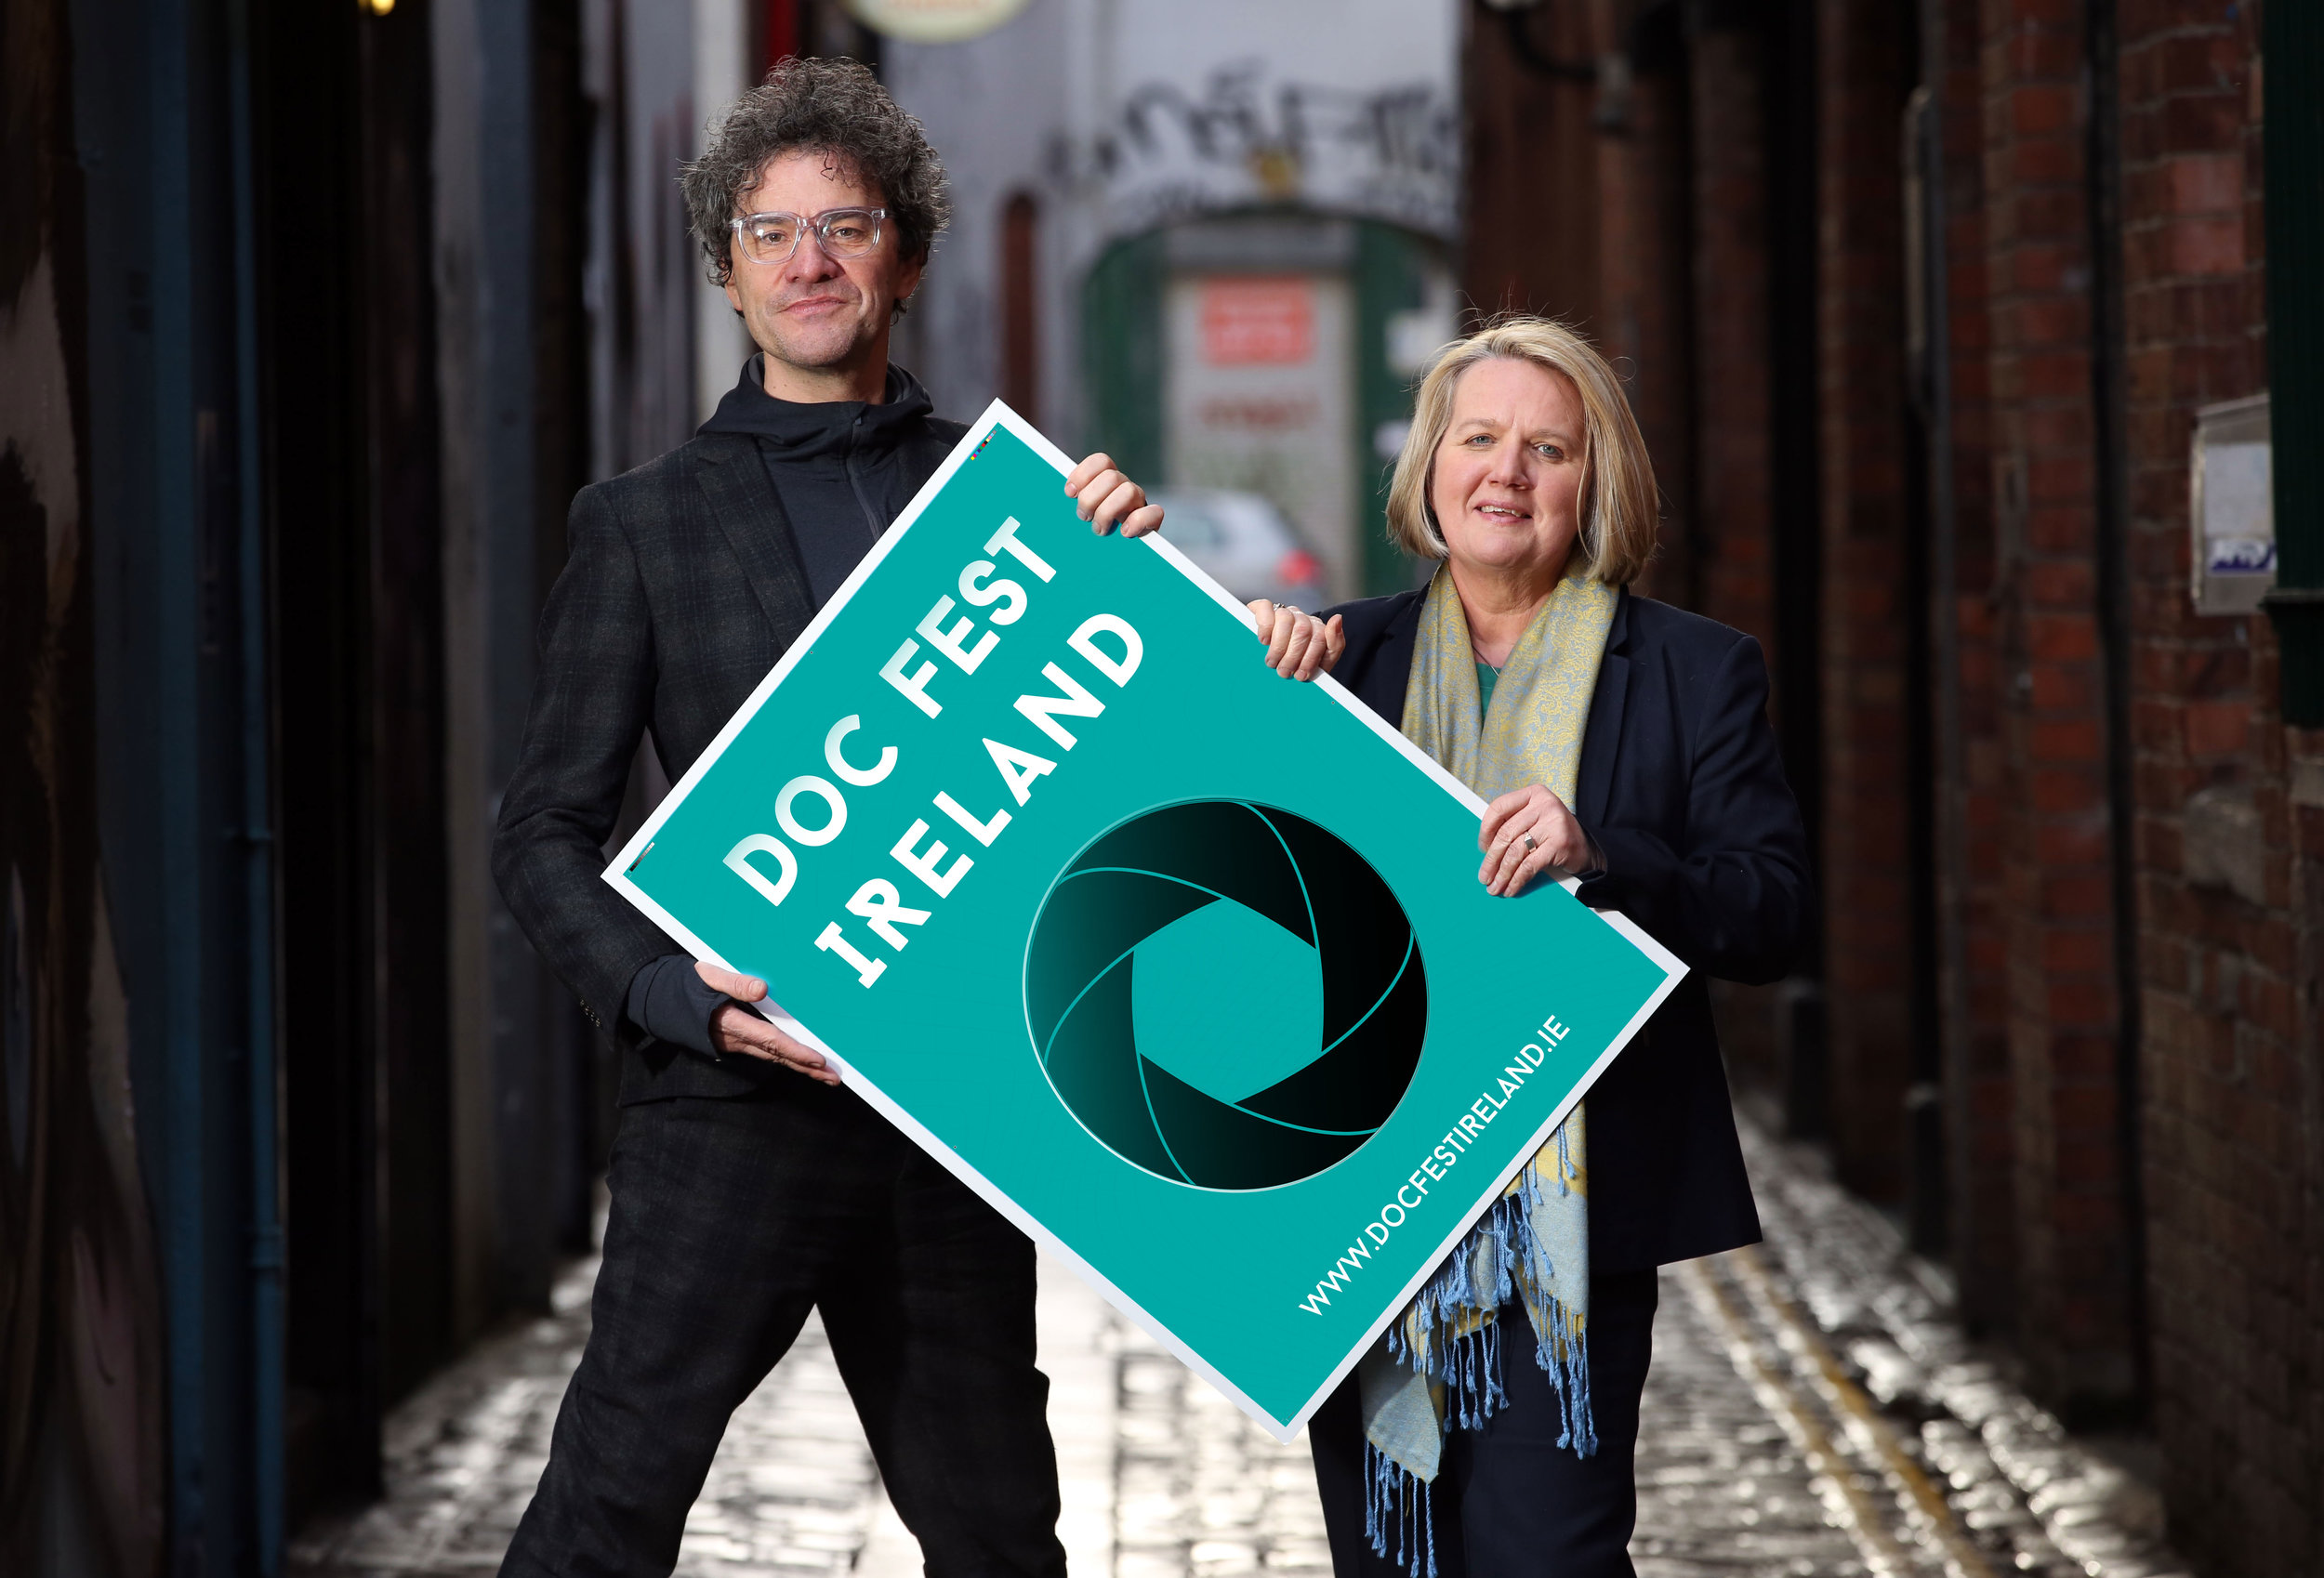 Chair of Belfast Film Festival Mark Cousins, and Director Michele Devlin launch Doc Fest Ireland, an exciting new documentary film festival.